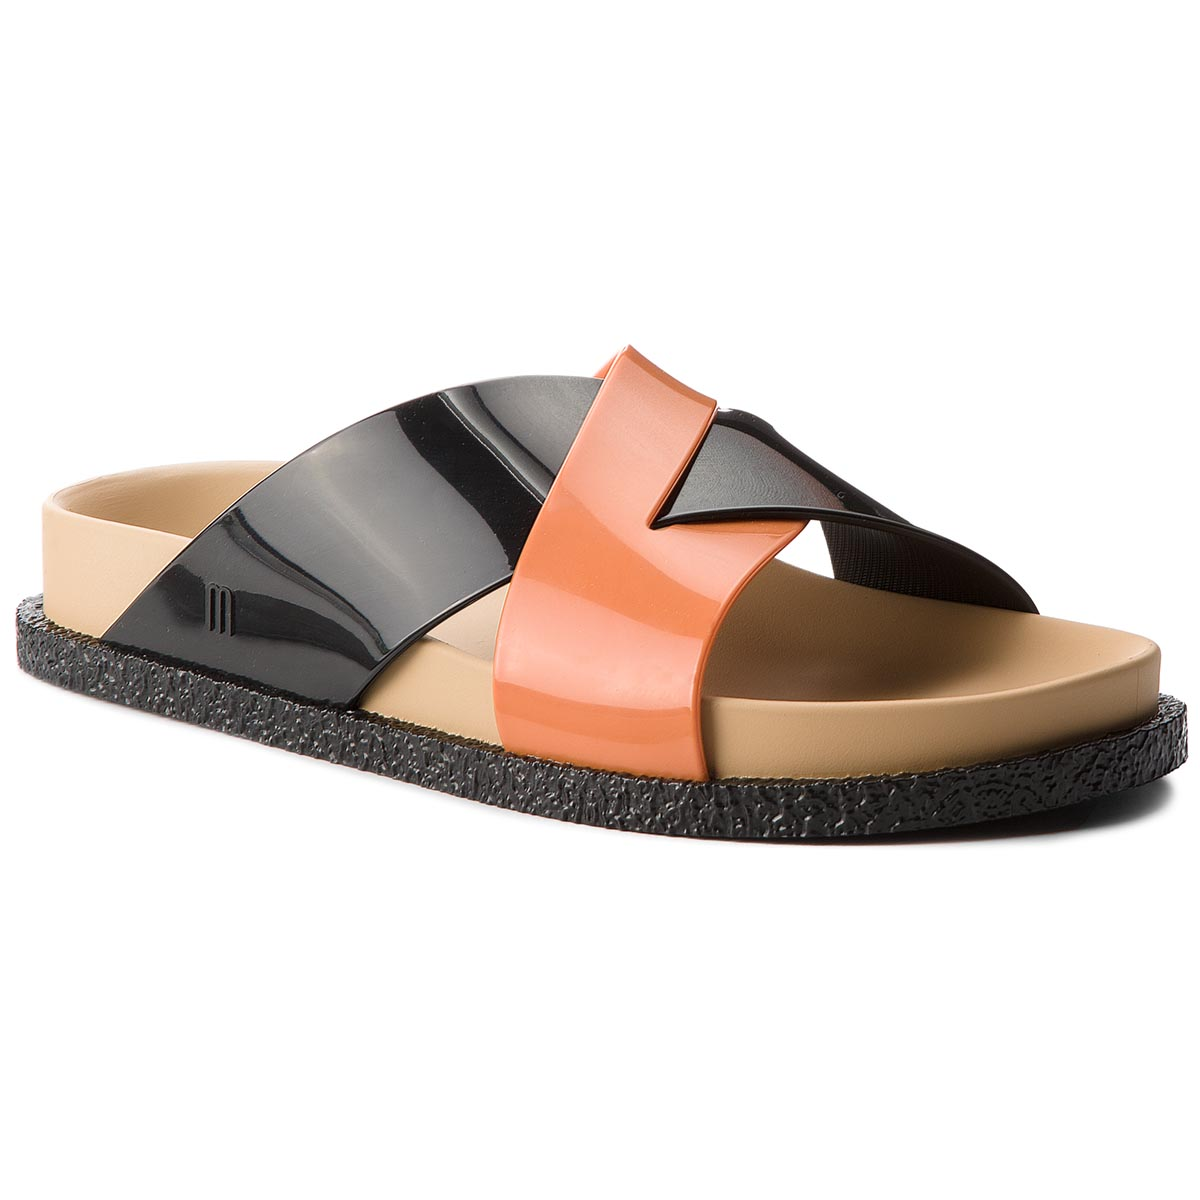 Klapki MELISSA - Energy Ad 32336 Black/Beige/Orange 52040